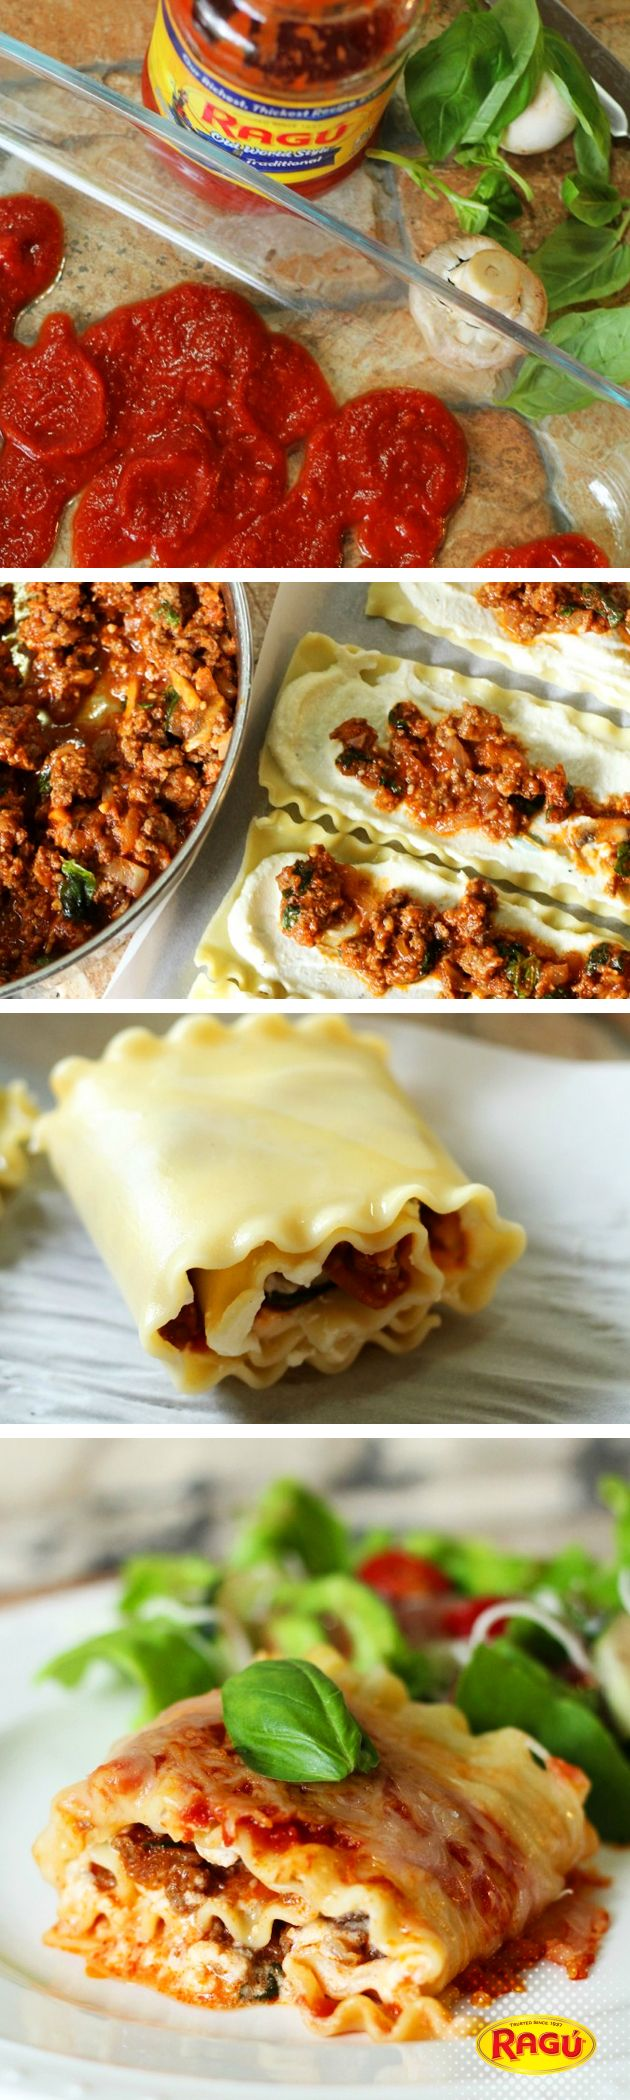 Let's get creative in the kitchen, with these Easiest Ever Lasagna Roll Ups! Dinner's on a roll with the great tastes of hearty ground beef, rich ricotta cheese, thick lasagna noodles and that wonderful Ragú Sauce. Roll, bake, and enjoy! A wonderfully easy dinner recipe from www.crystalandcomp.com.